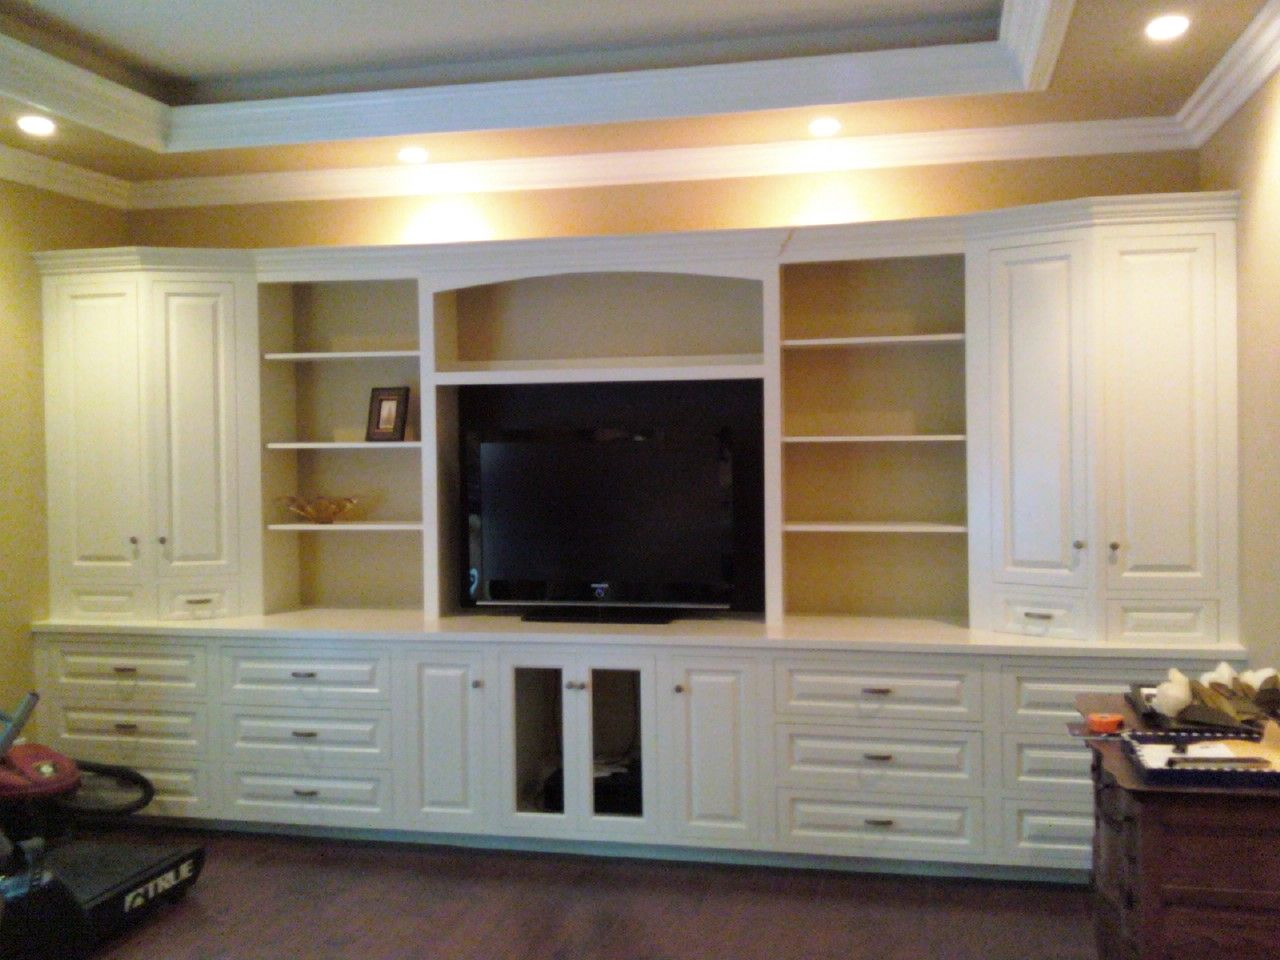 Built In Wall Shelves Living Room Wall Units With Storage Wall Units Design Ideas